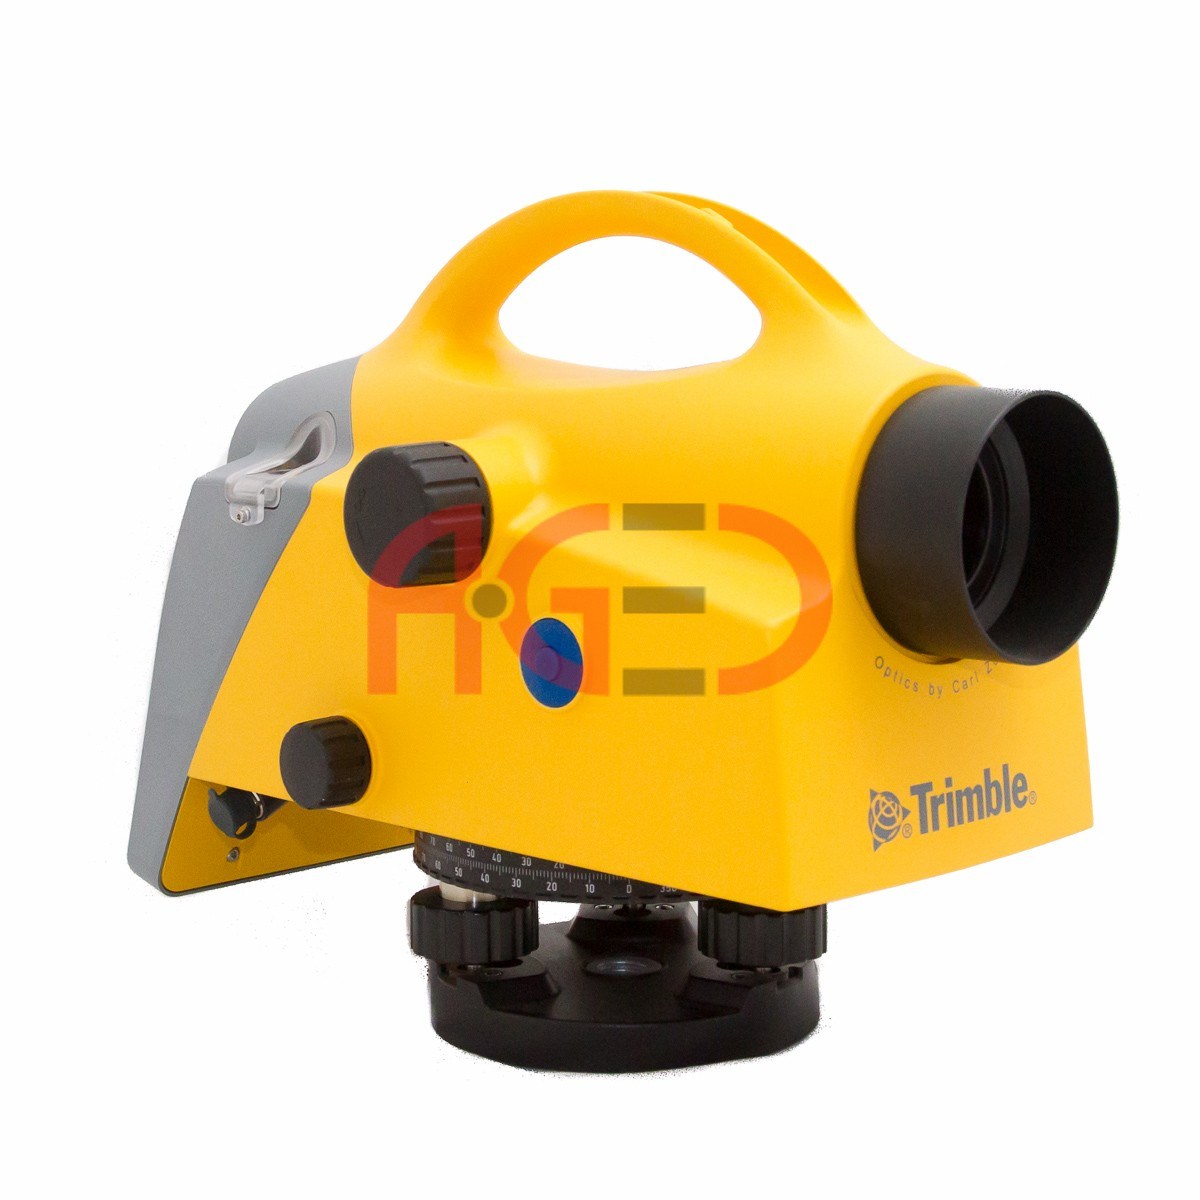 Trimble DiNi 0.7